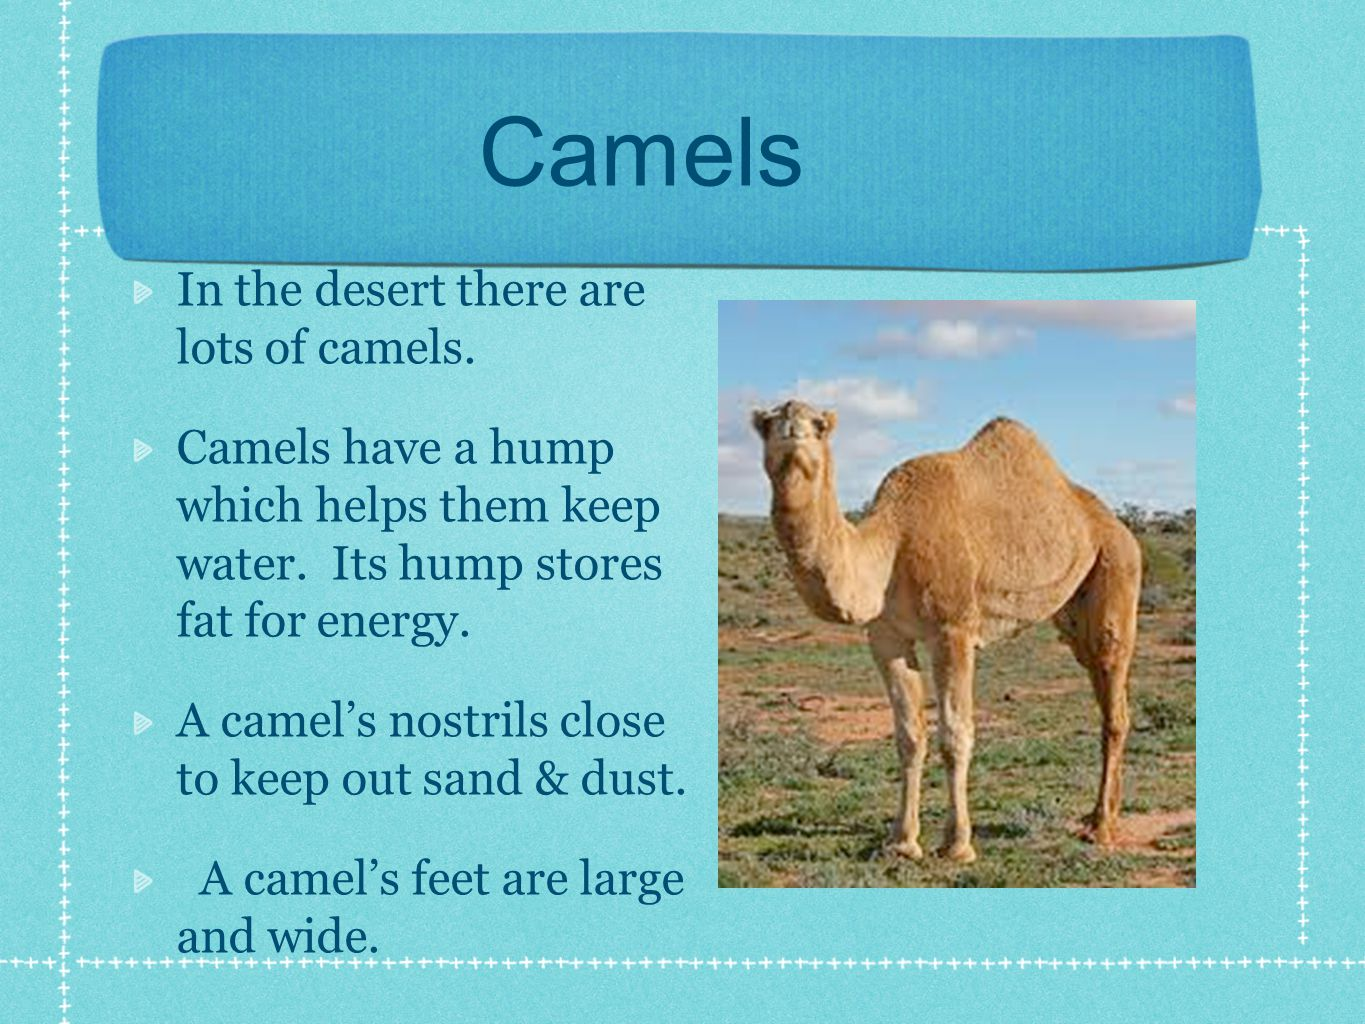 Camel 2 A camel's eyes have a double row of long eyelashes.